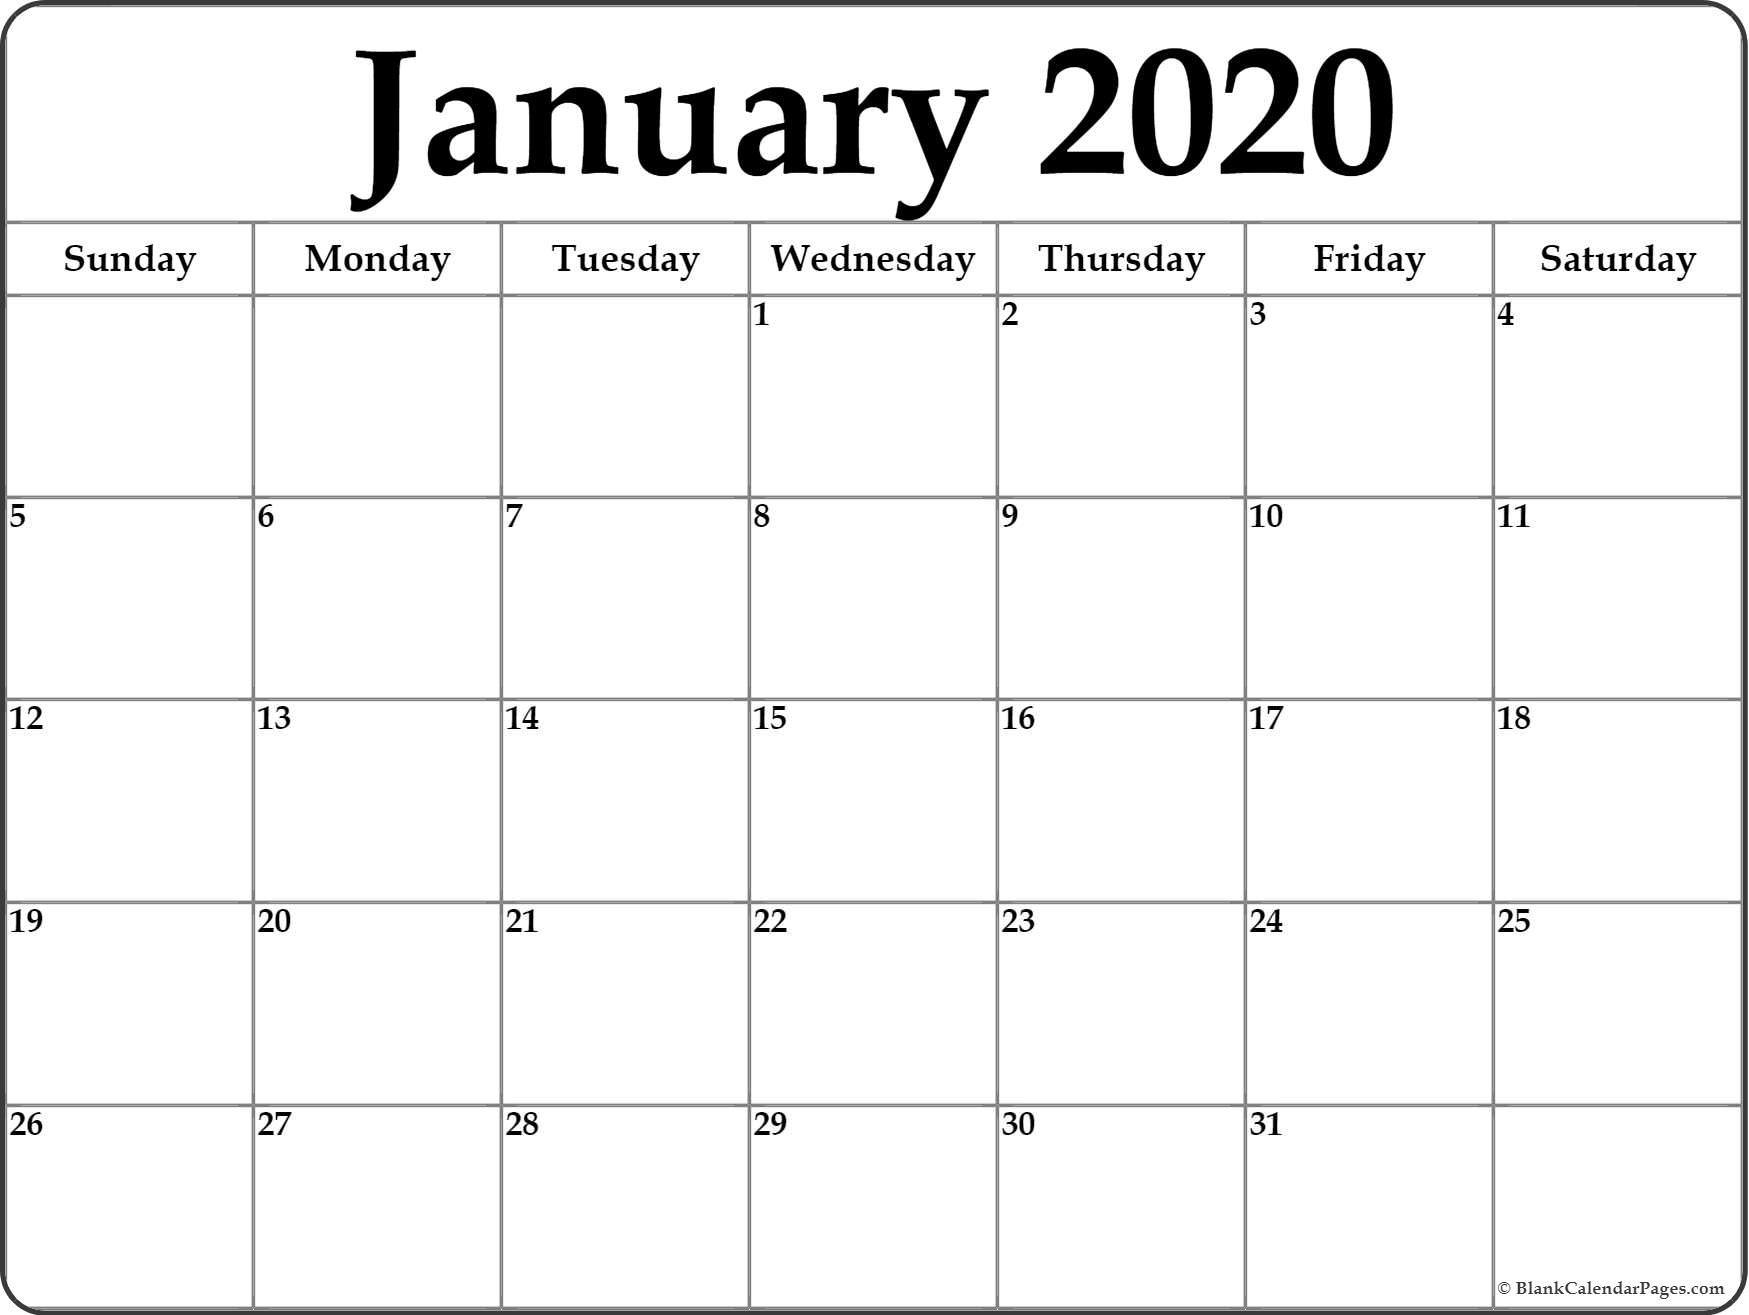 Free Printable January 2020 Calendars  Yatay within 2020 Blank Calendar Pages